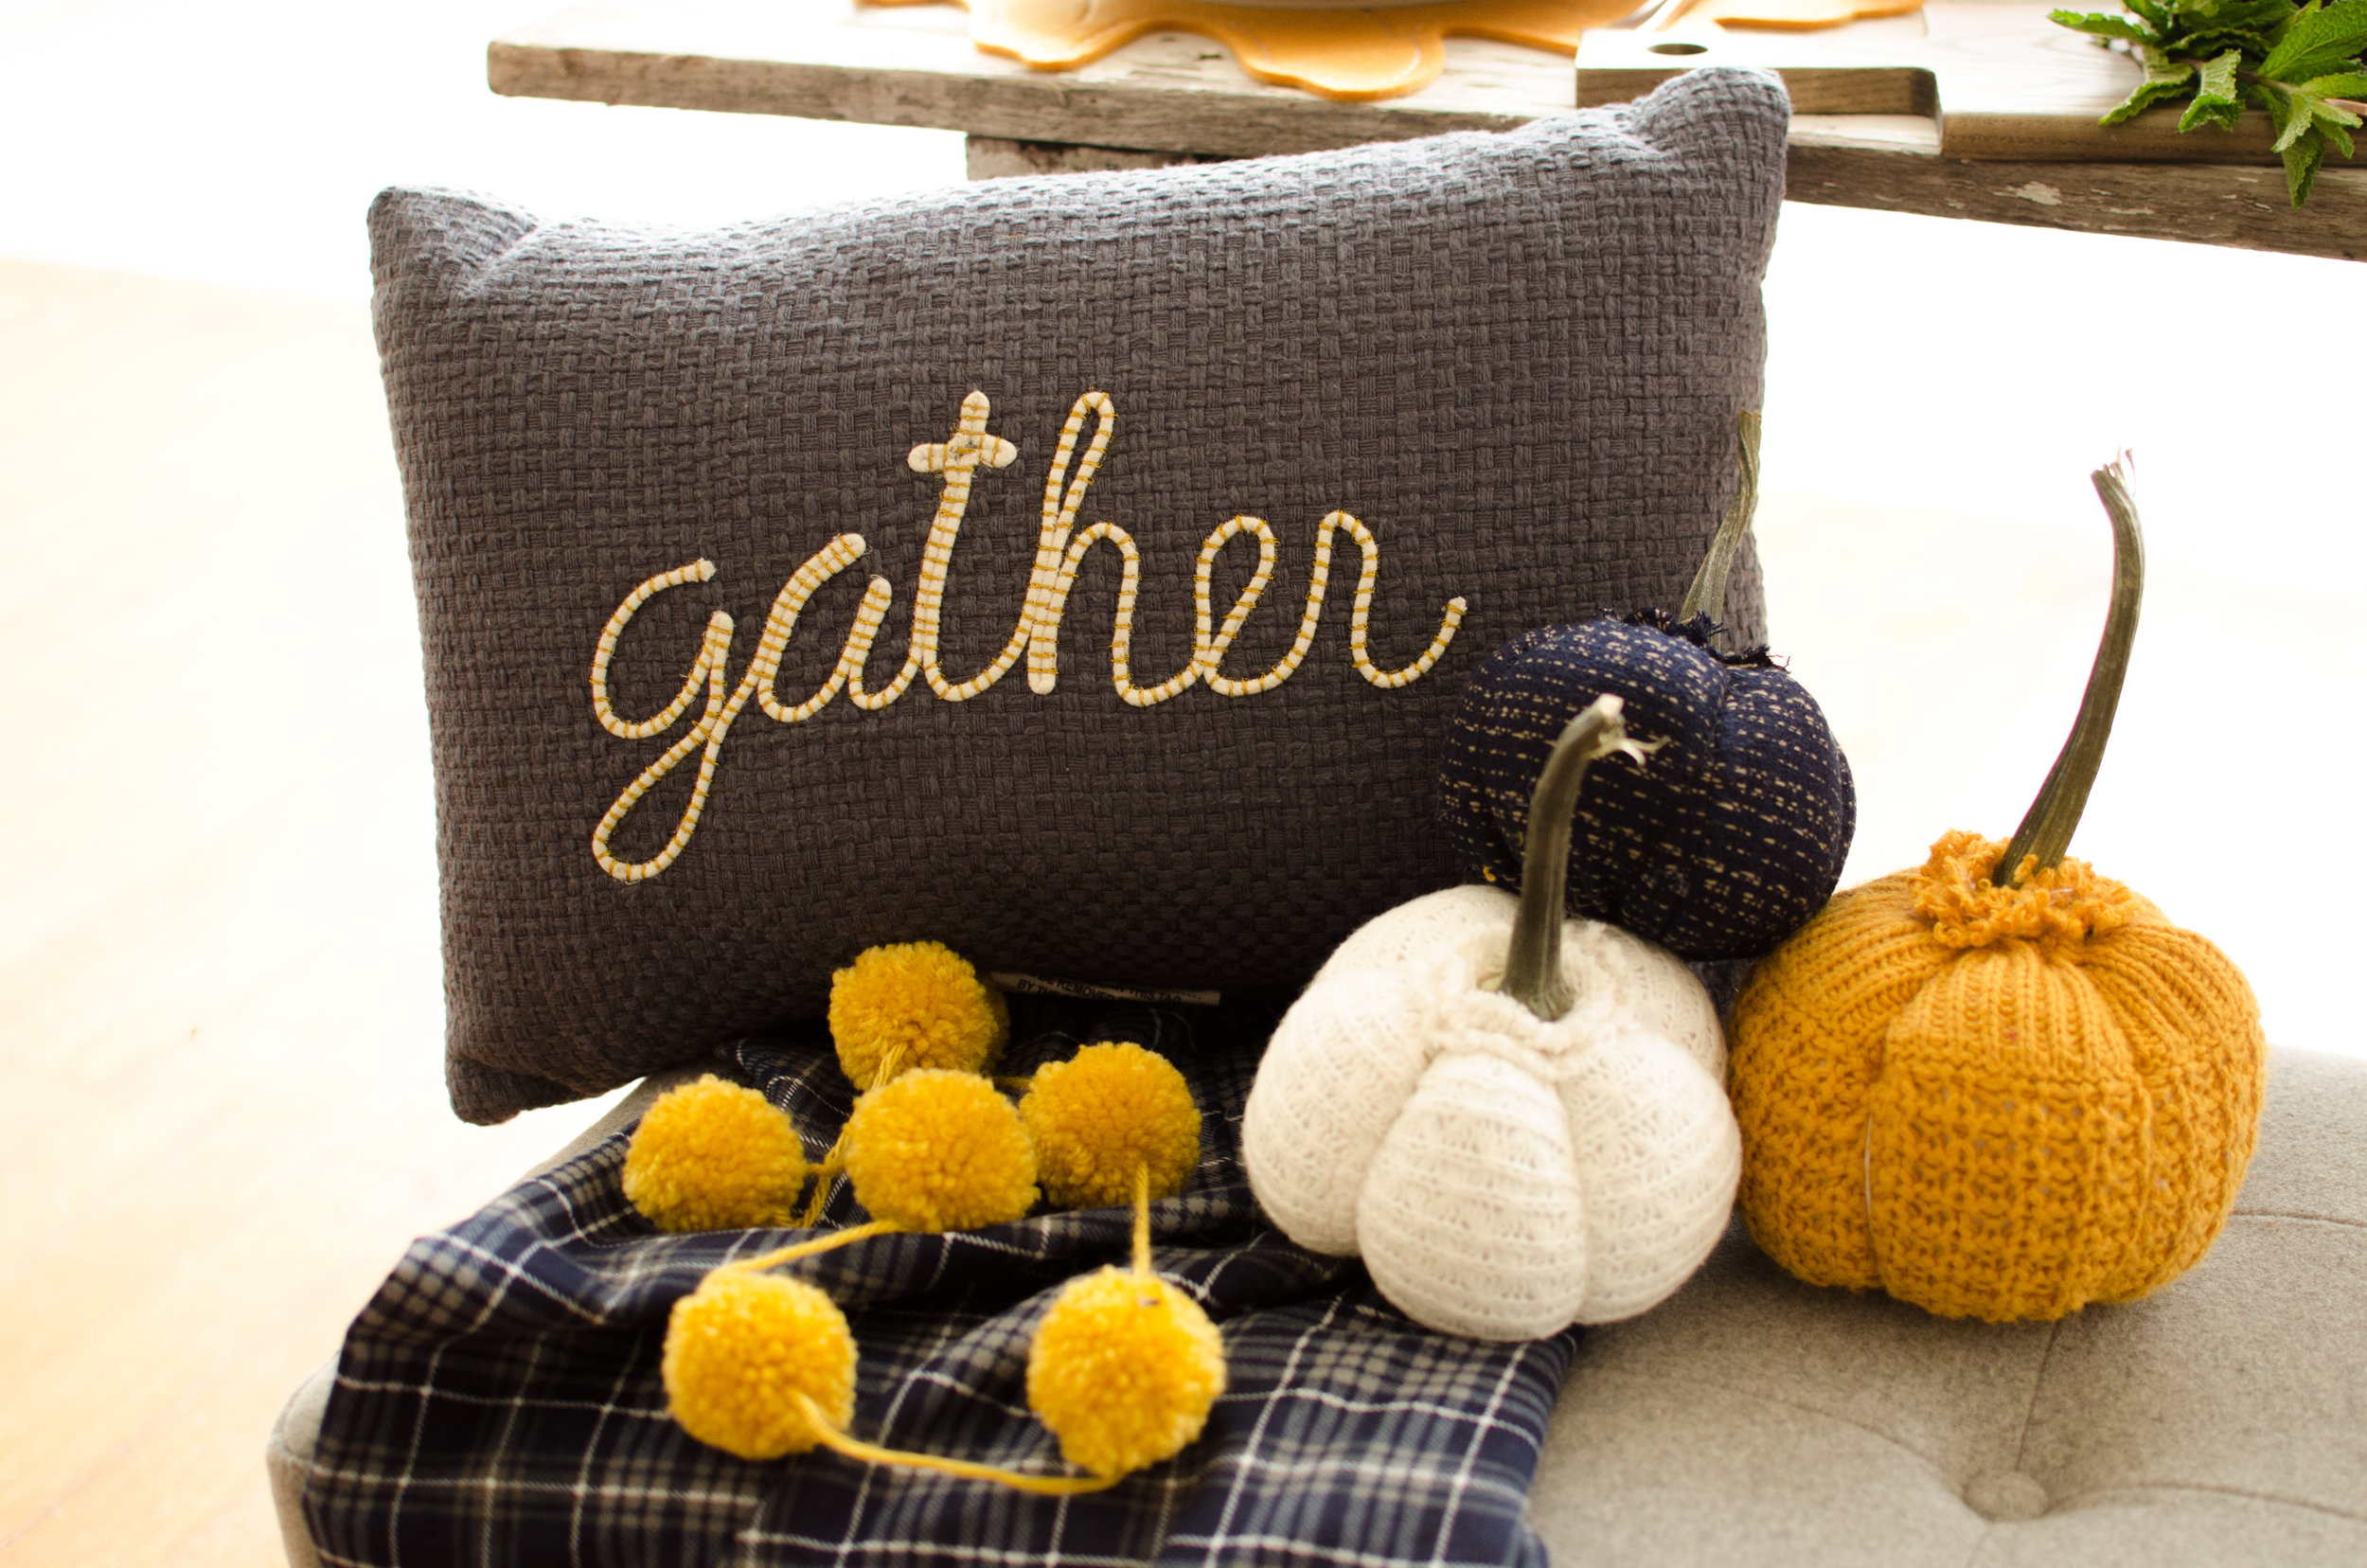 Fabric pumpkins and cozy elements like this plaid throw really add charm to this Thanksgiving table setting. See more Thanksgiving Party Ideas from party planner, Mint Event Design in Austin, Texas on www.minteventdesign.com #thanksgiving #thanksgivingdecorations #tablescape #thanksgivingtable #pumpkins #tablesettings #fallparty